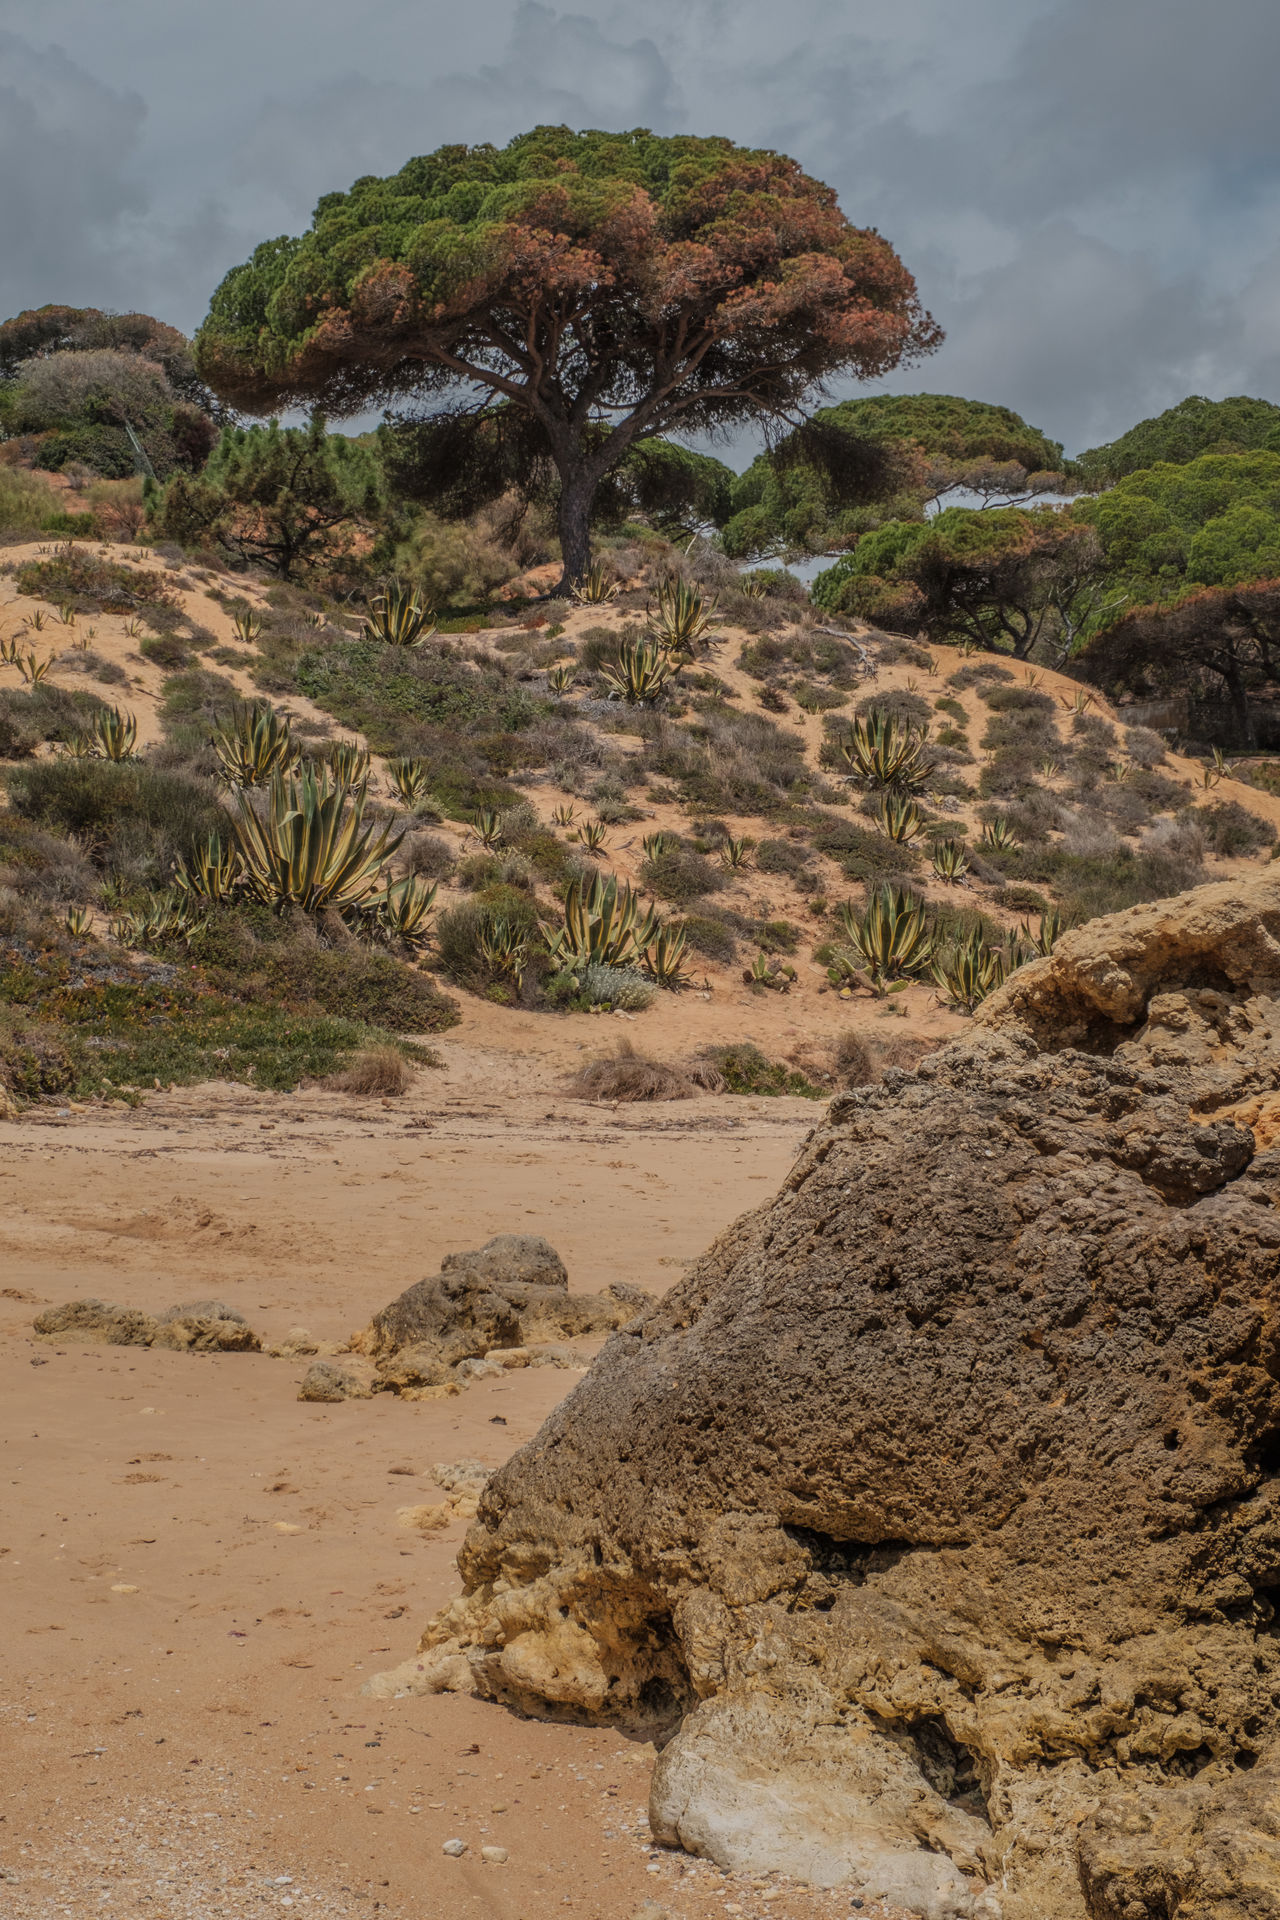 Algarve, Portugal Arid Climate Beauty In Nature Day Desert Landscape Mountain Nature Outdoors Physical Geography Rock Formation Scenics Tranquility Travel Destinations Tree